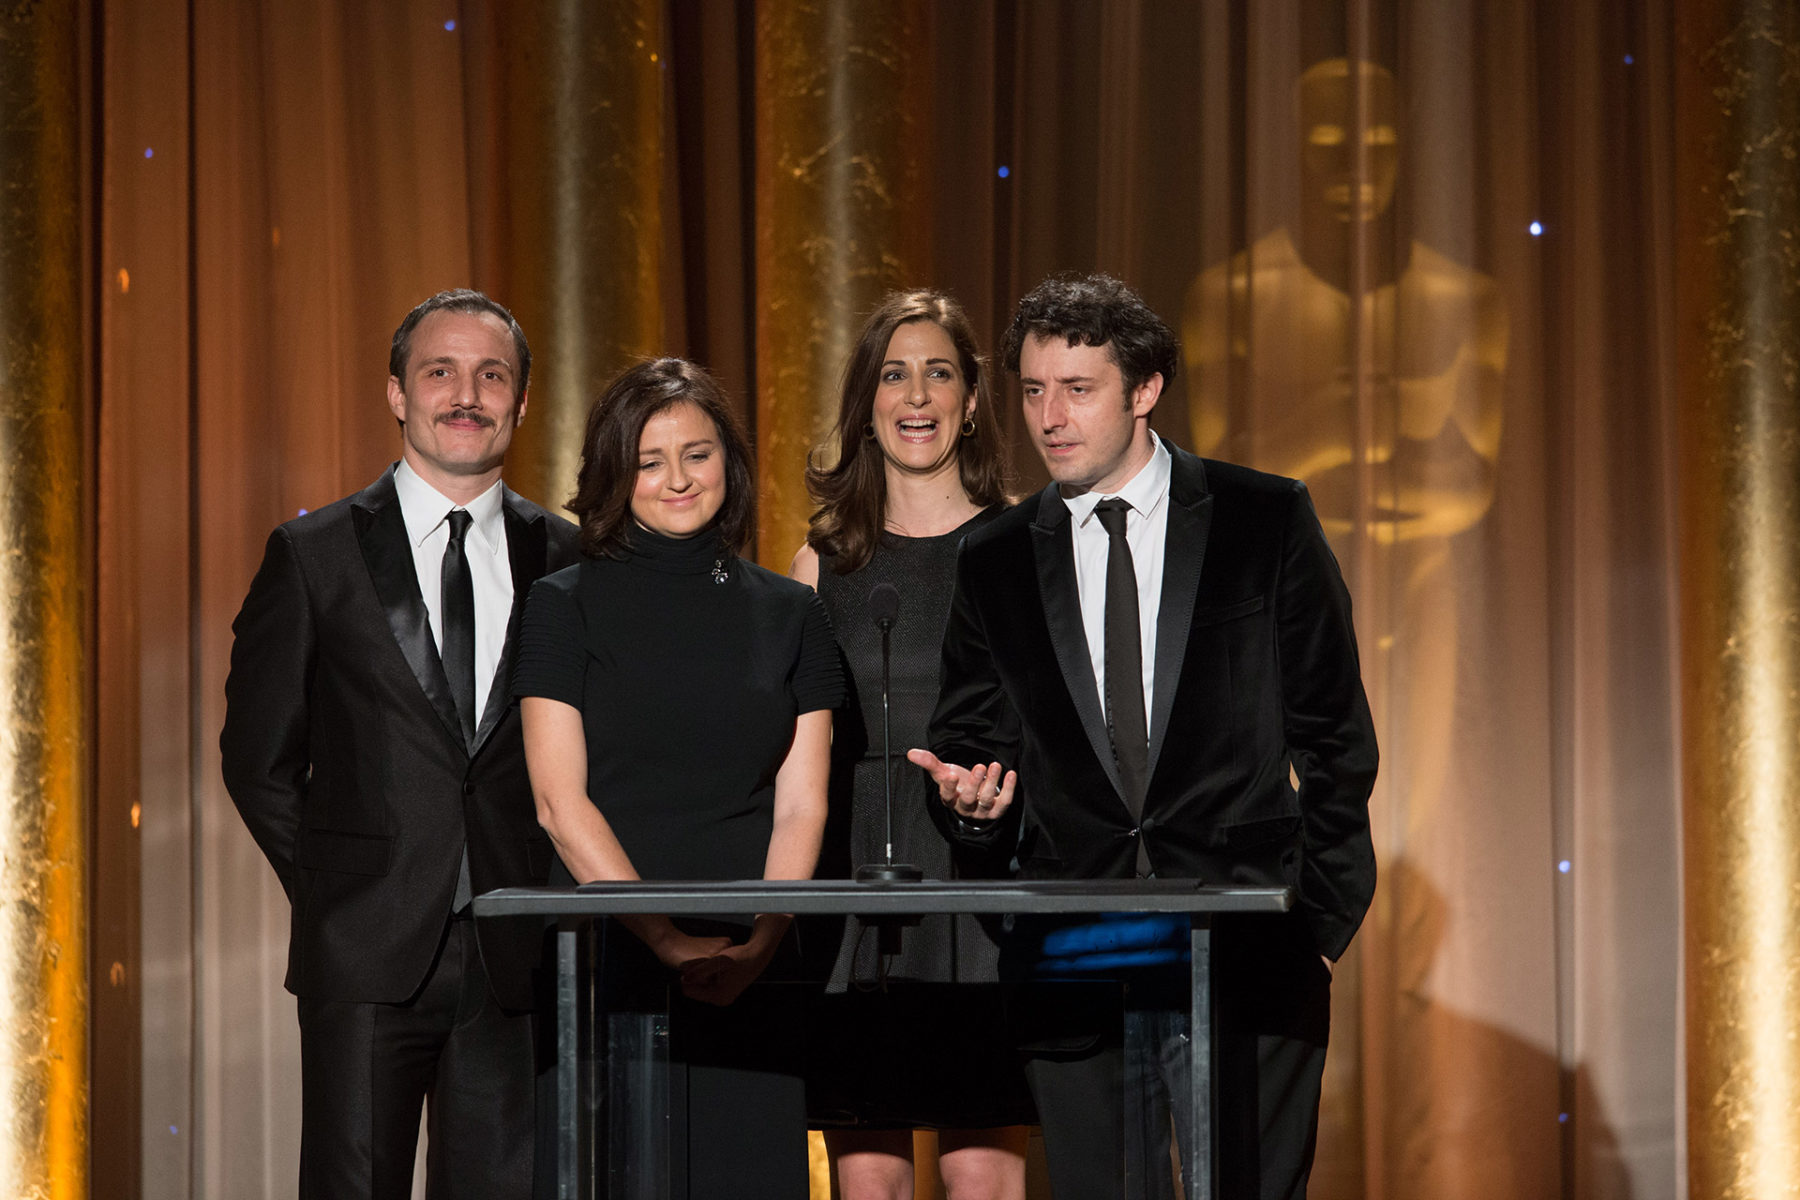 Governors Awards. Image courtesy Getty Images